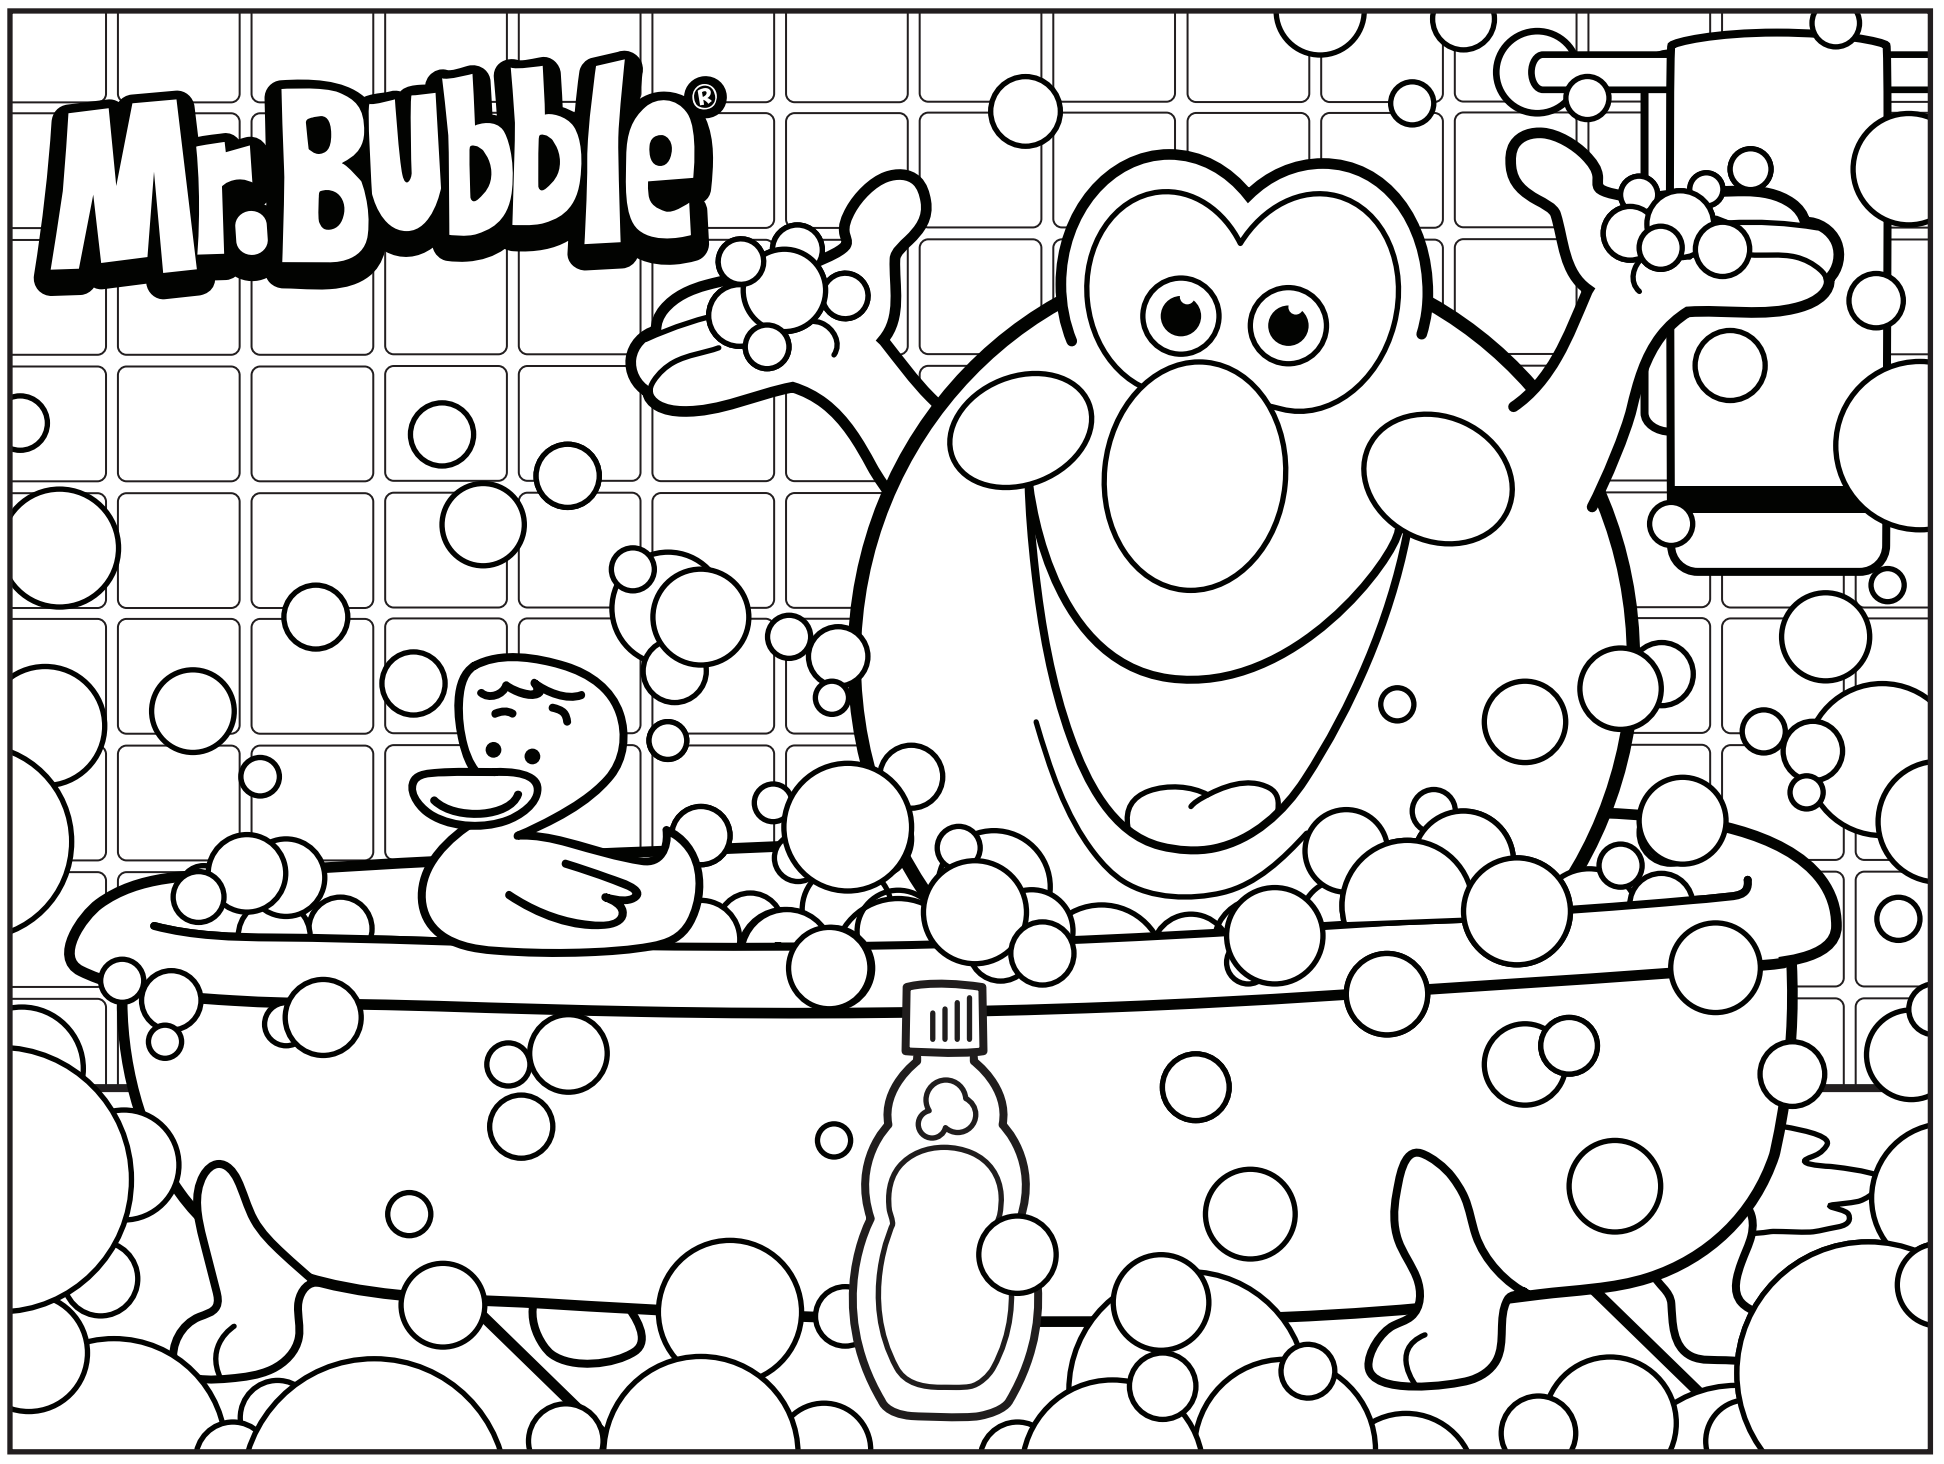 m bubble printable coloring pages - photo #39